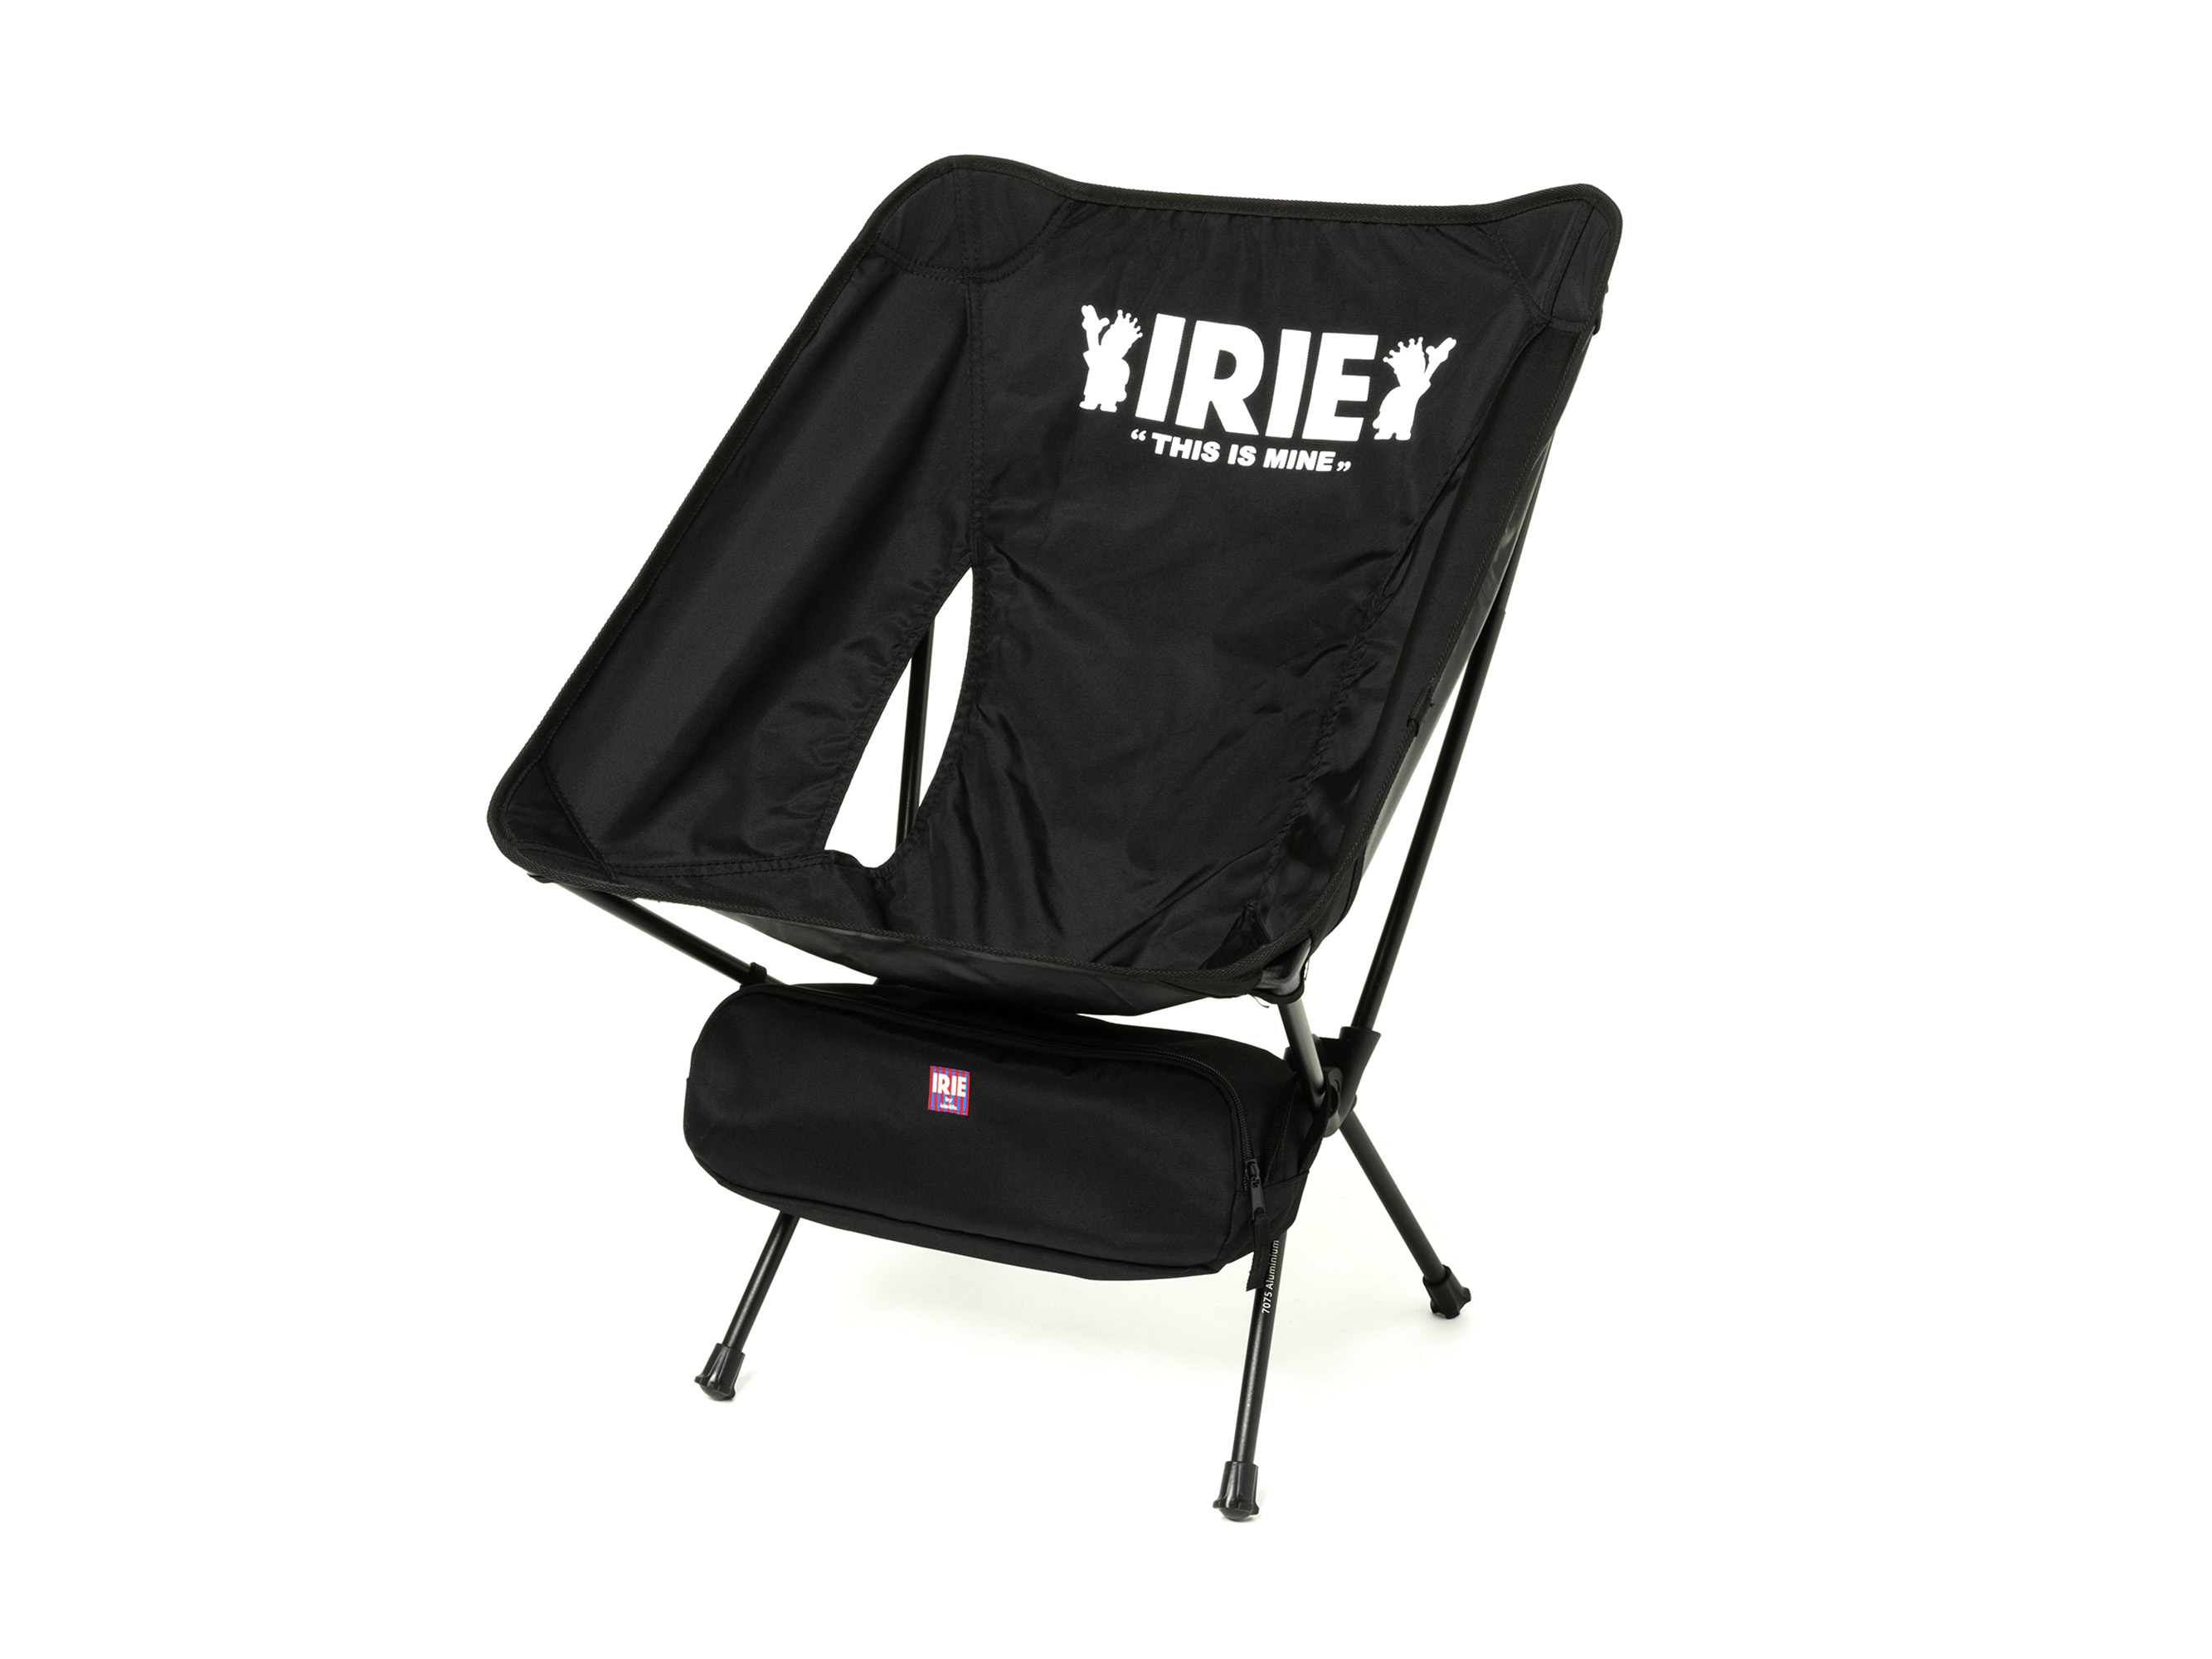 IRIE OUTDOOR FIT CHAIR - IRIE by irielife